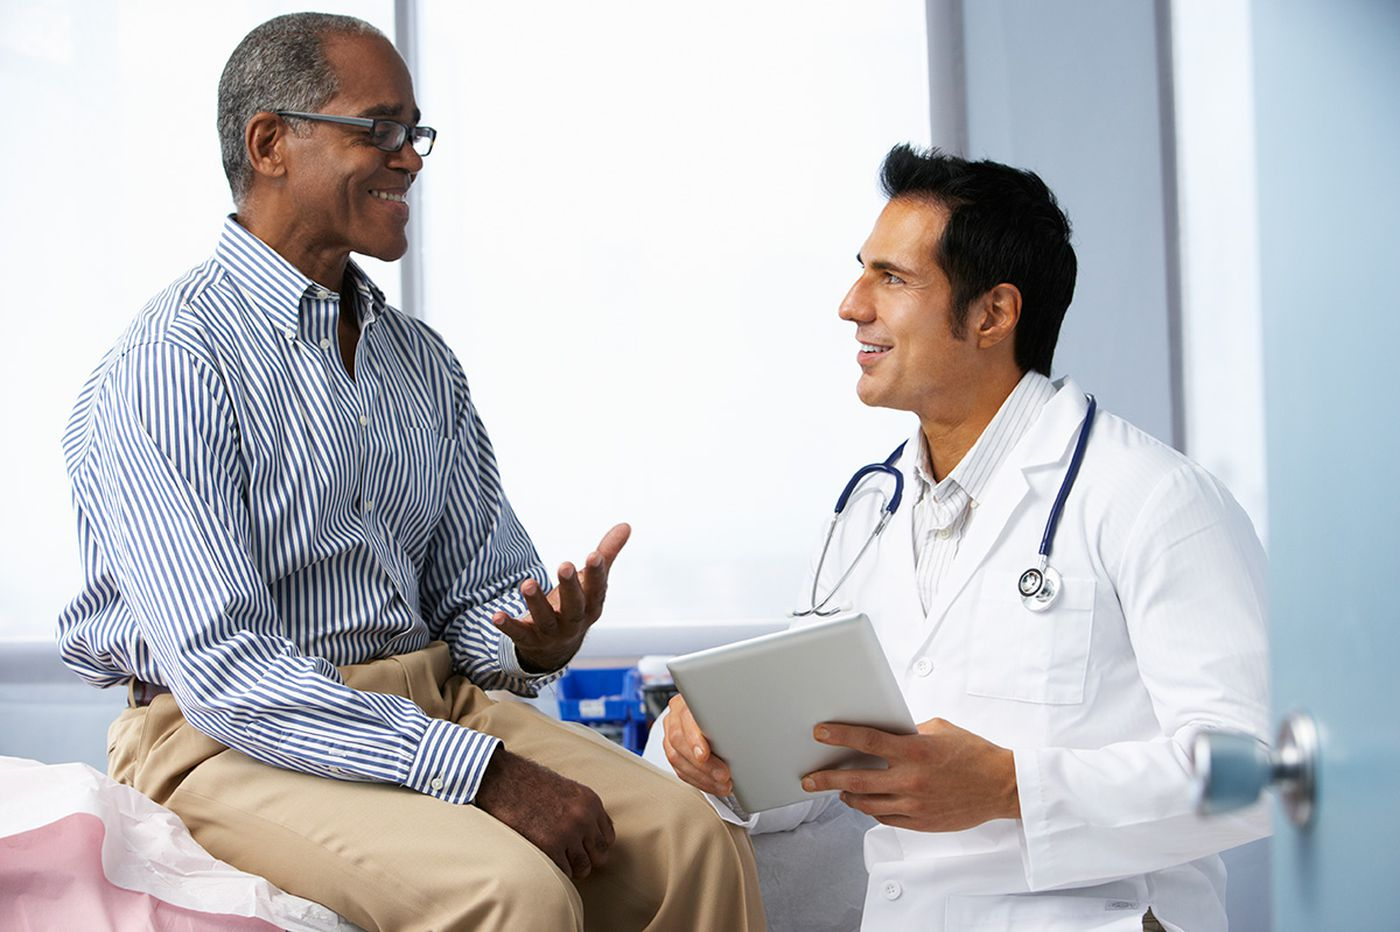 Make sure you understand doctor's orders - try a teach-back